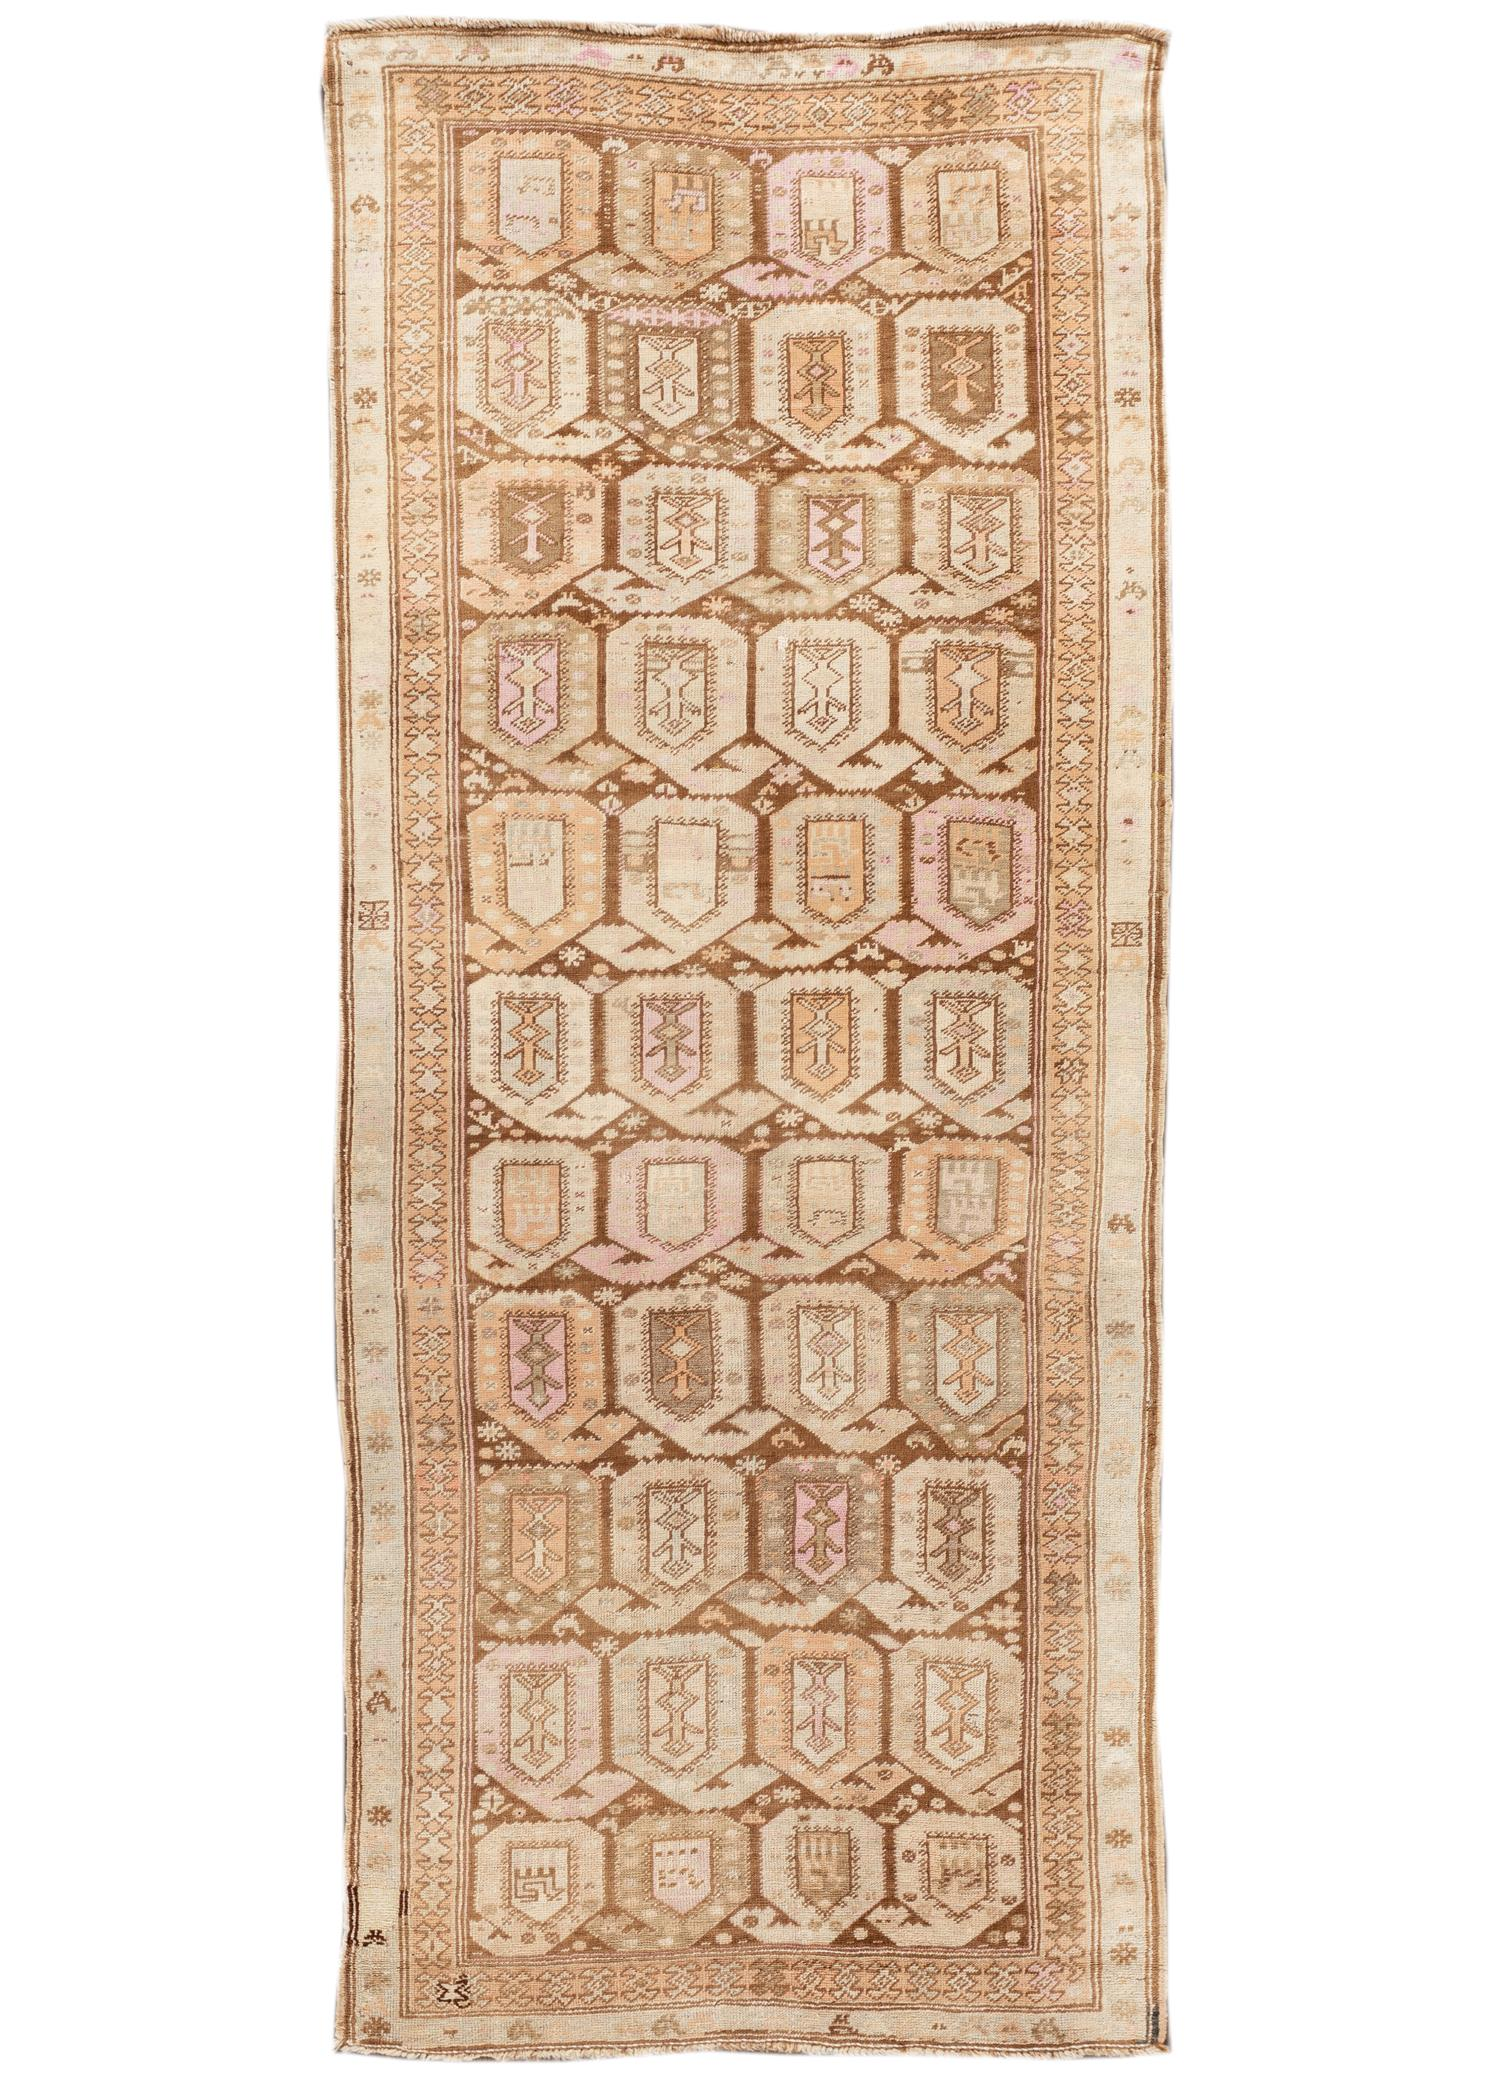 Antique Karabaugh Rug, #10235254, 4' x 10'